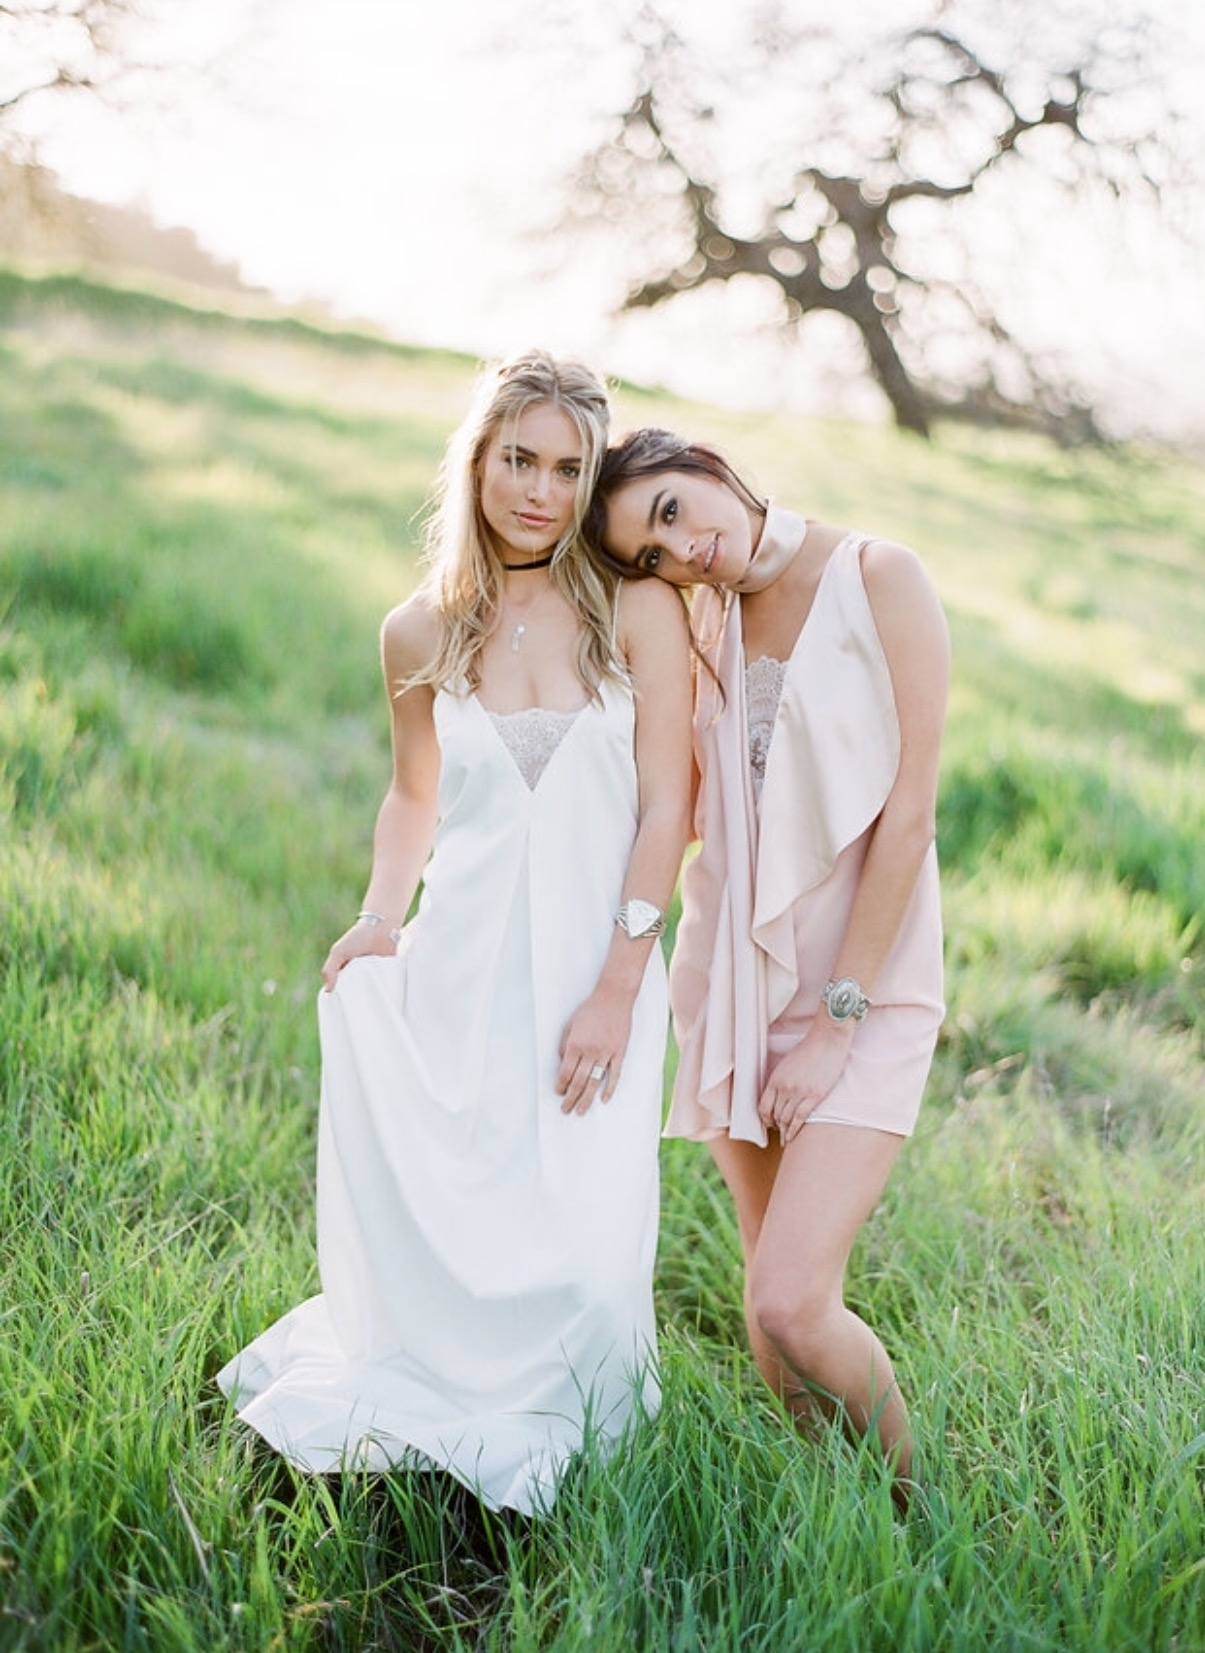 Bridal style: TEAM Hair and Makeup for Rime Arodaky / Photography: Greg Finck